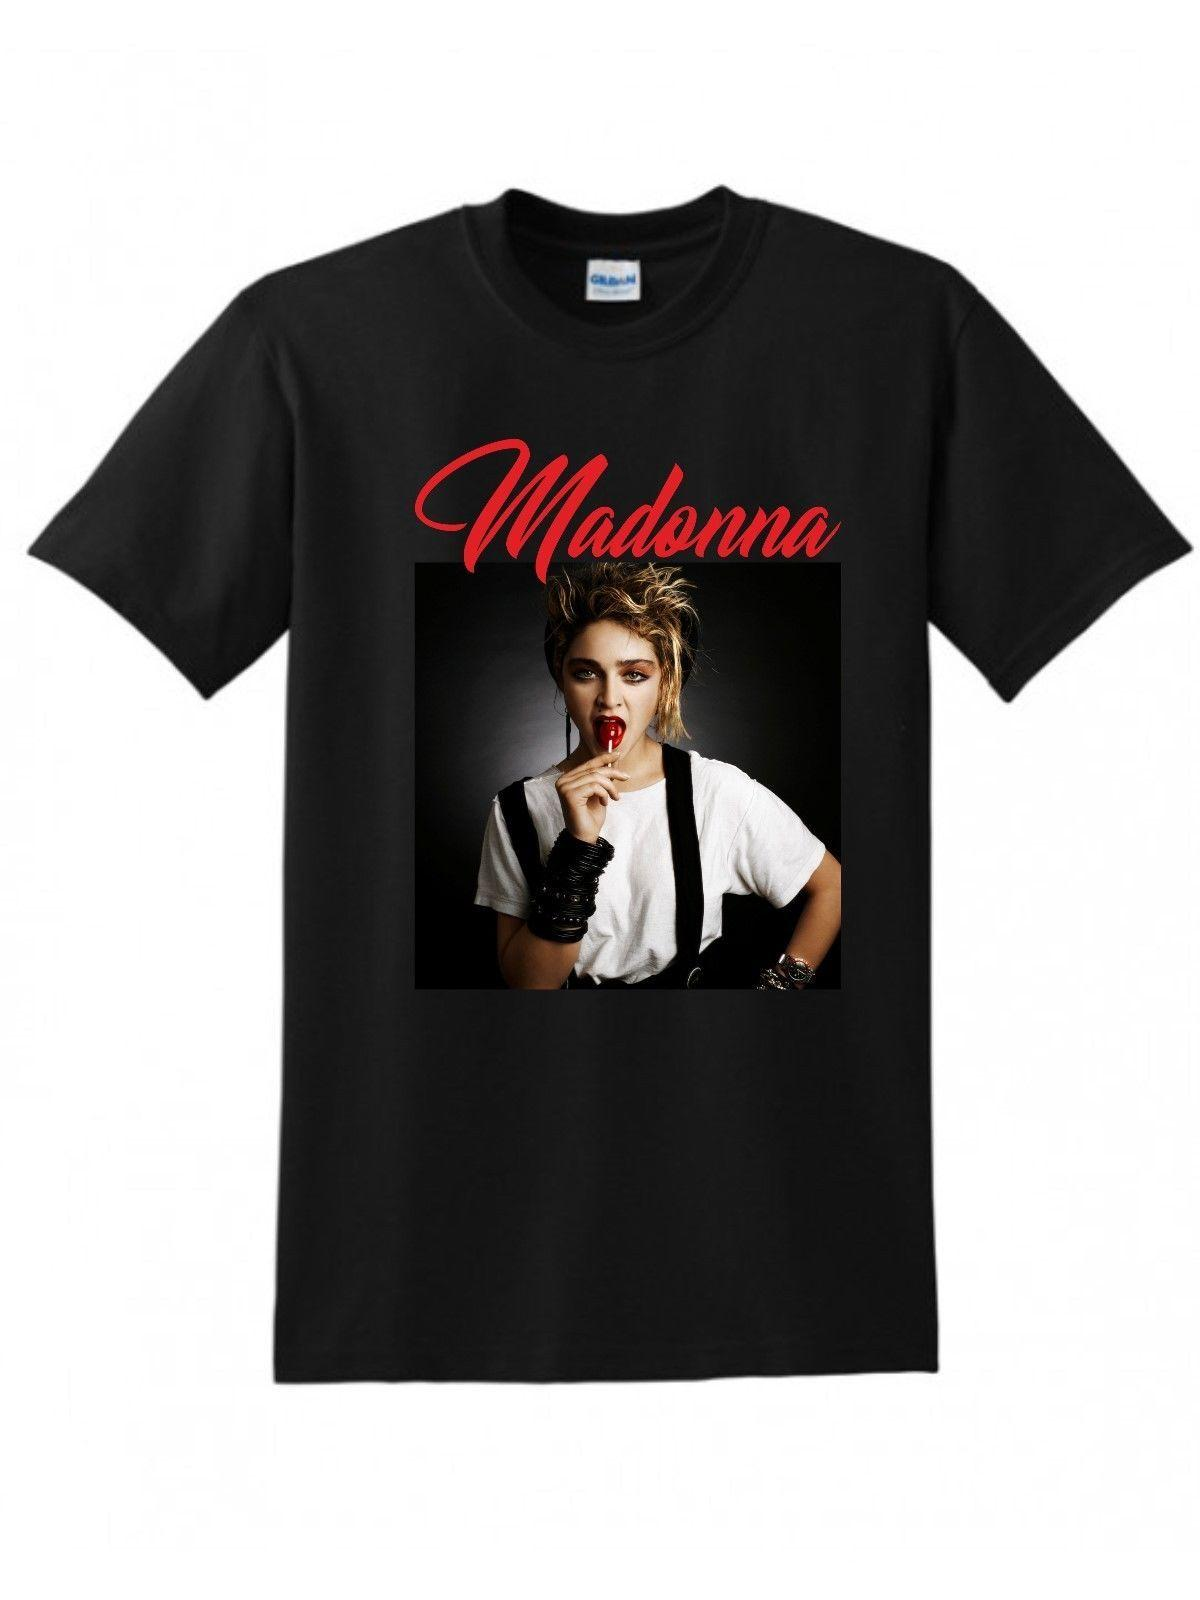 f1e82a61cf581 Madonna T-shirt,Queen of pop,1980 s,singer- free delivery